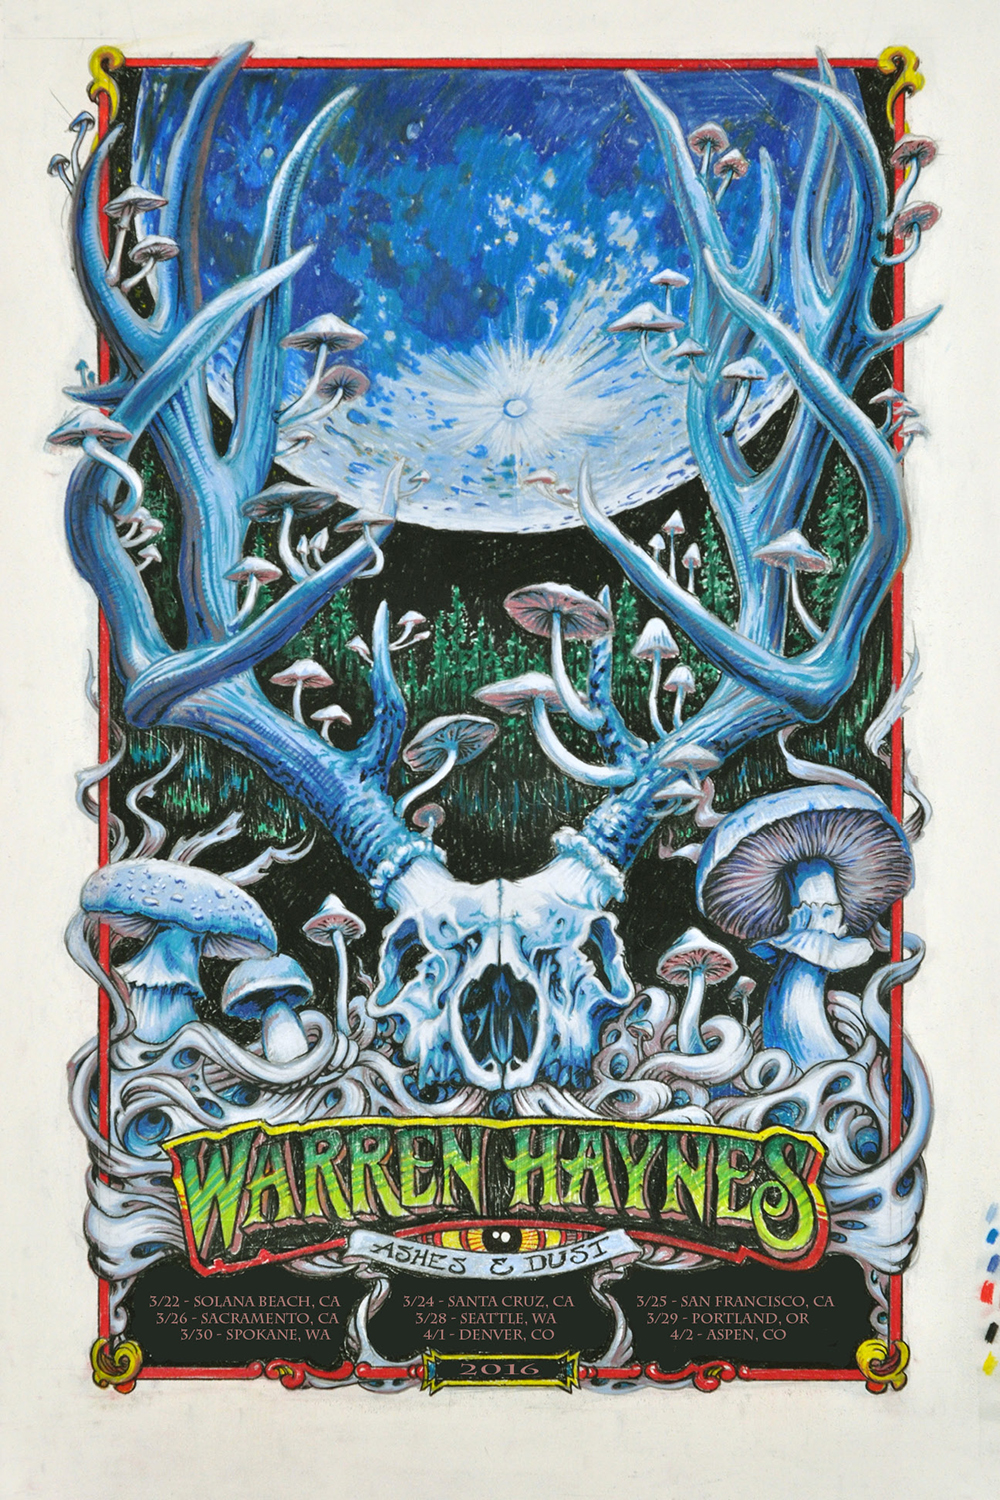 16WarrenHaynes_WestCoast.jpg